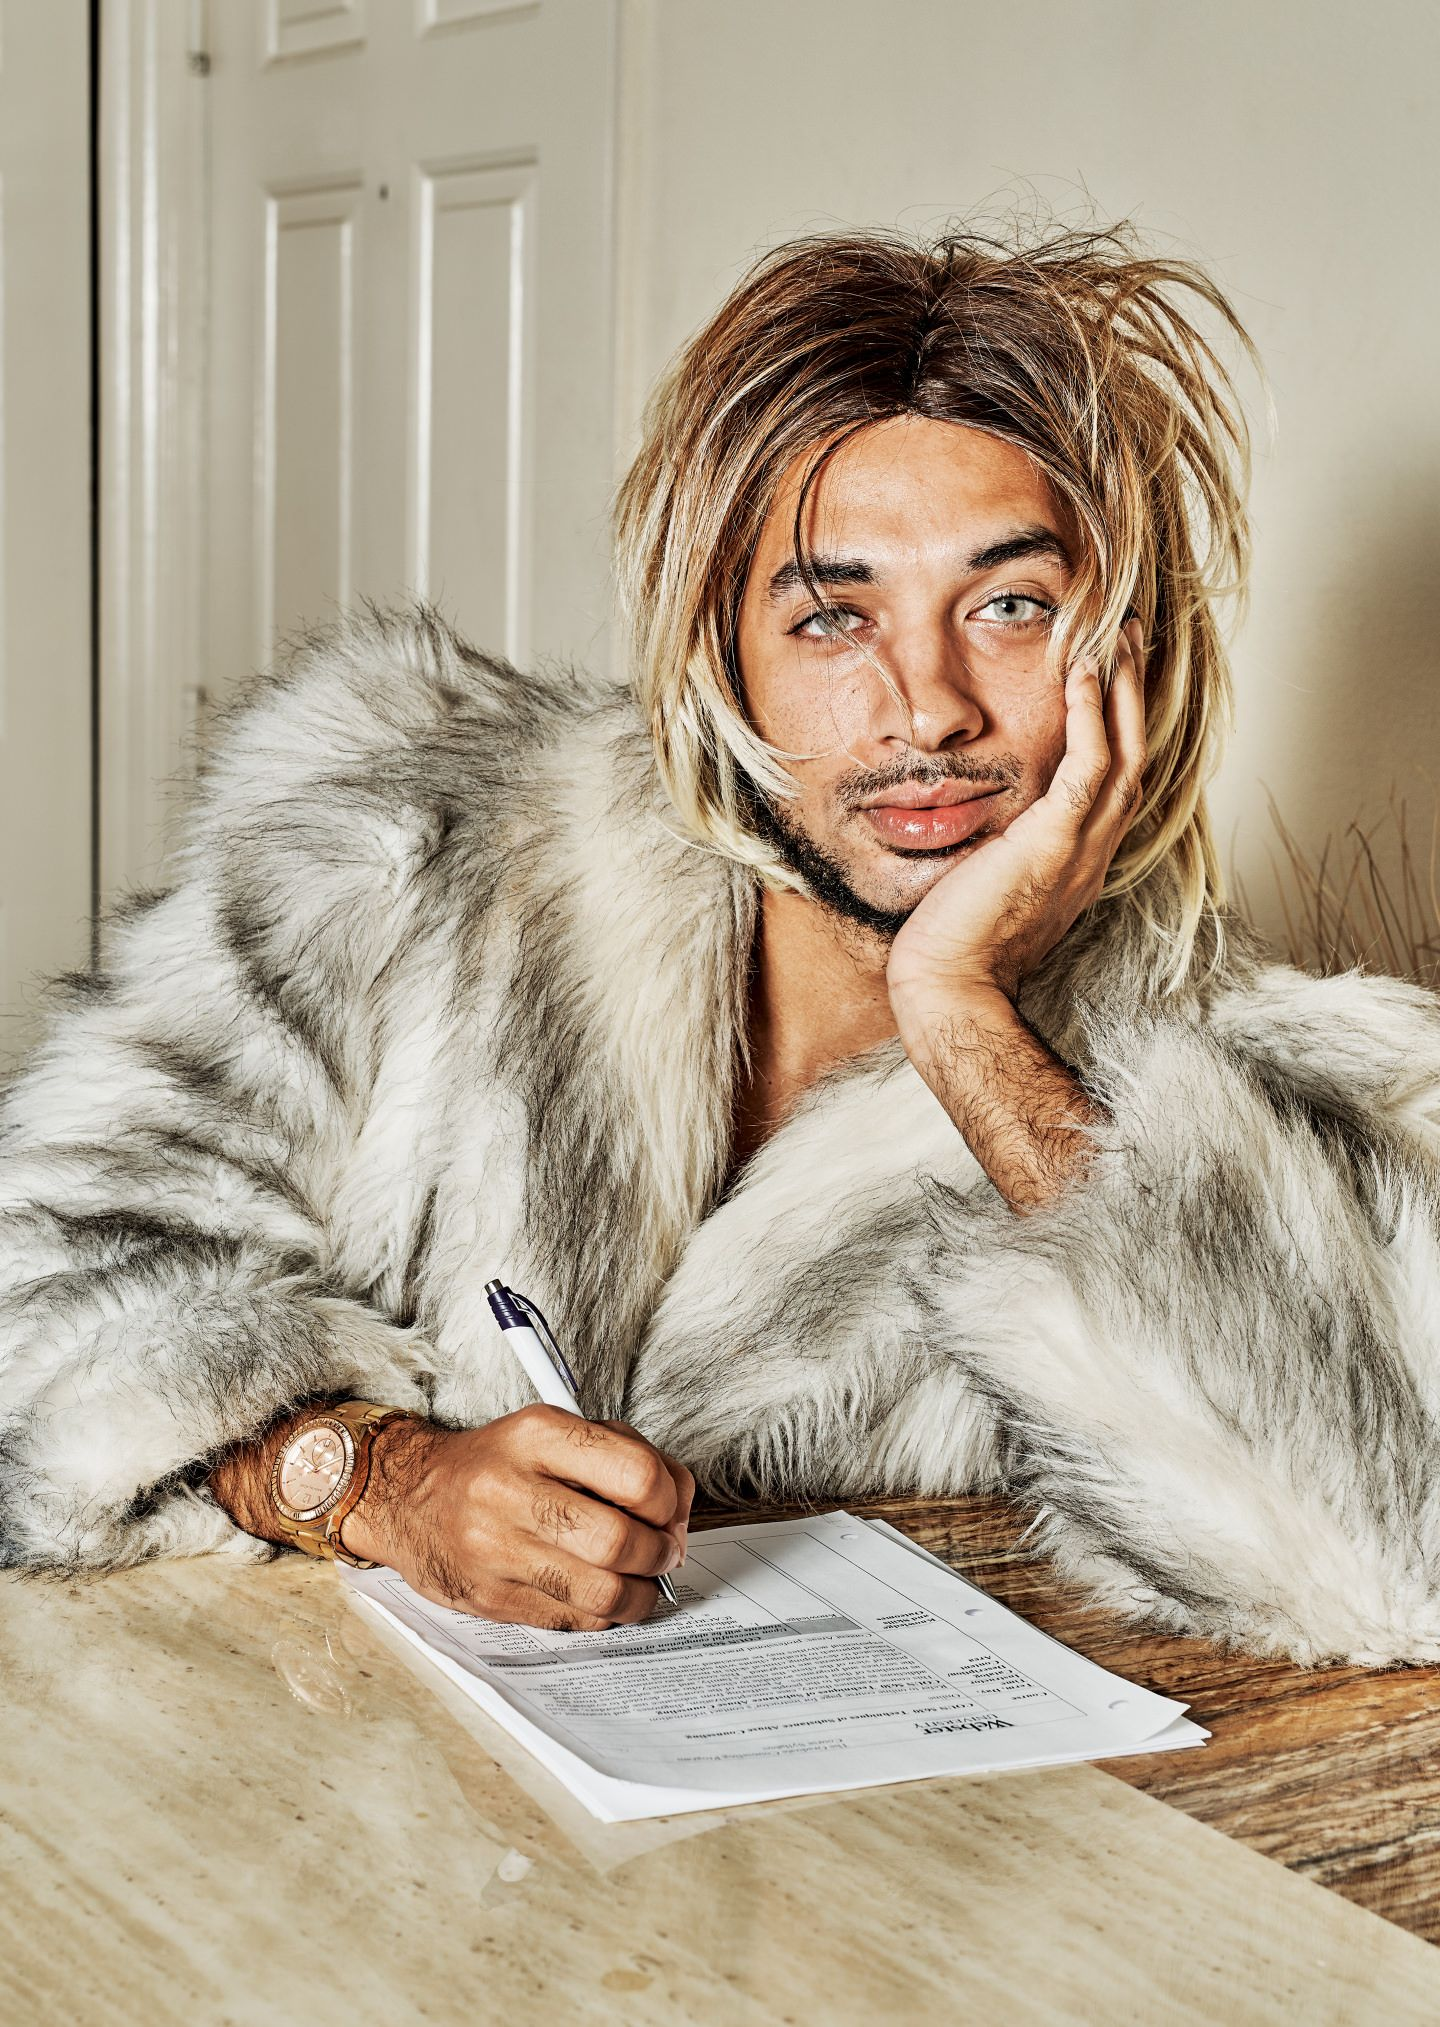 viral internet sensations joanne the scammer current